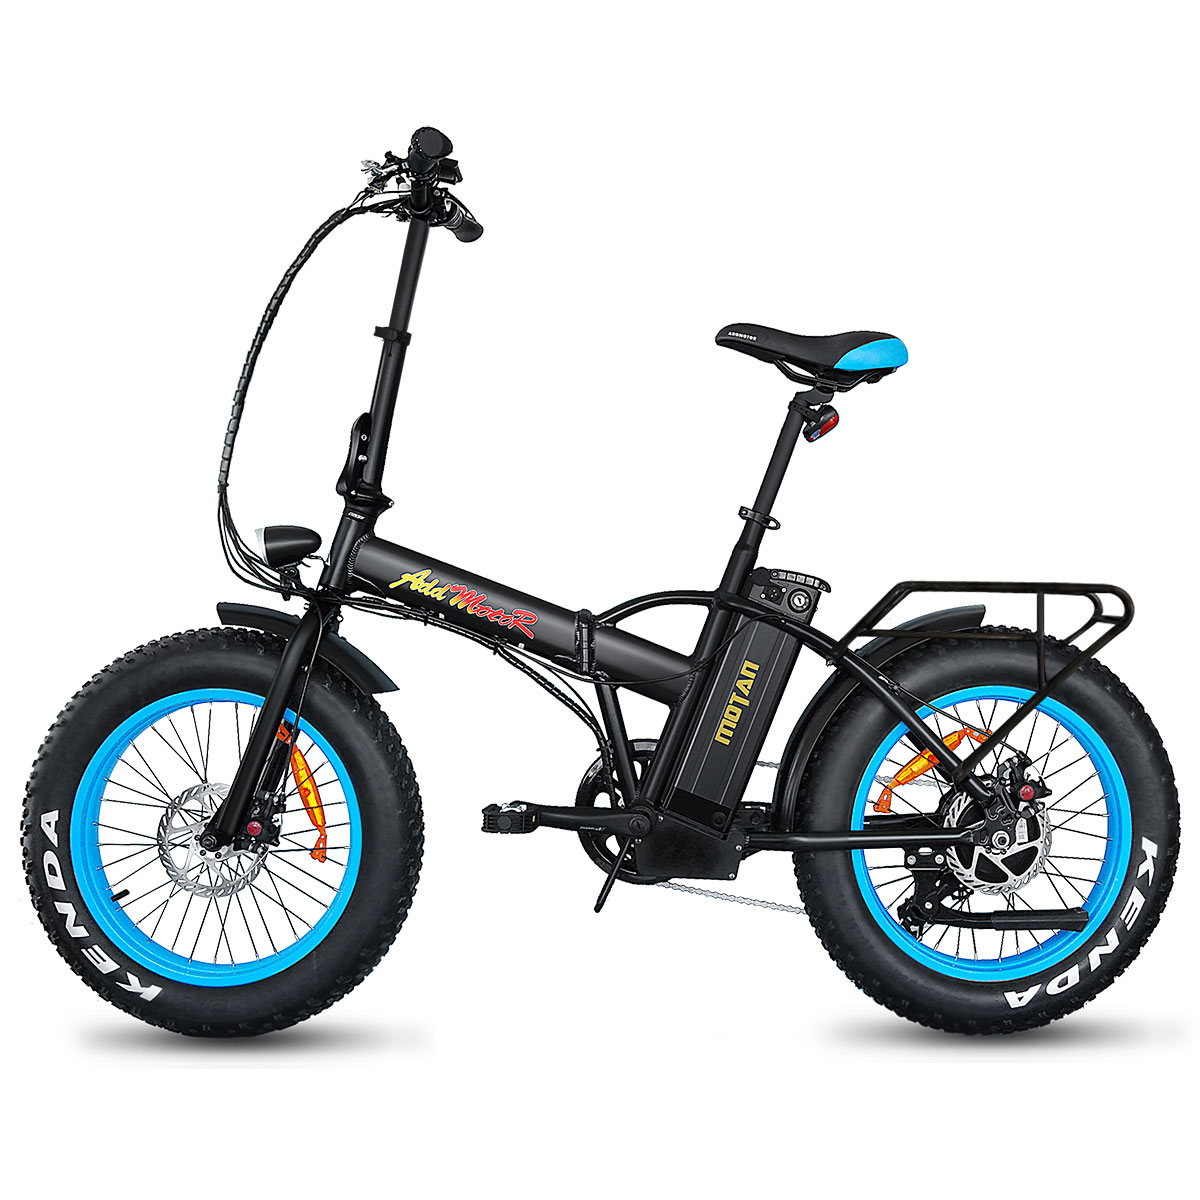 Addmotor MOTAN Electric Bike Bicycles Folding 20in Fat Tire E-Bikes 500W 48V Mountain Snow Bikes M-150 Collapsible Bike